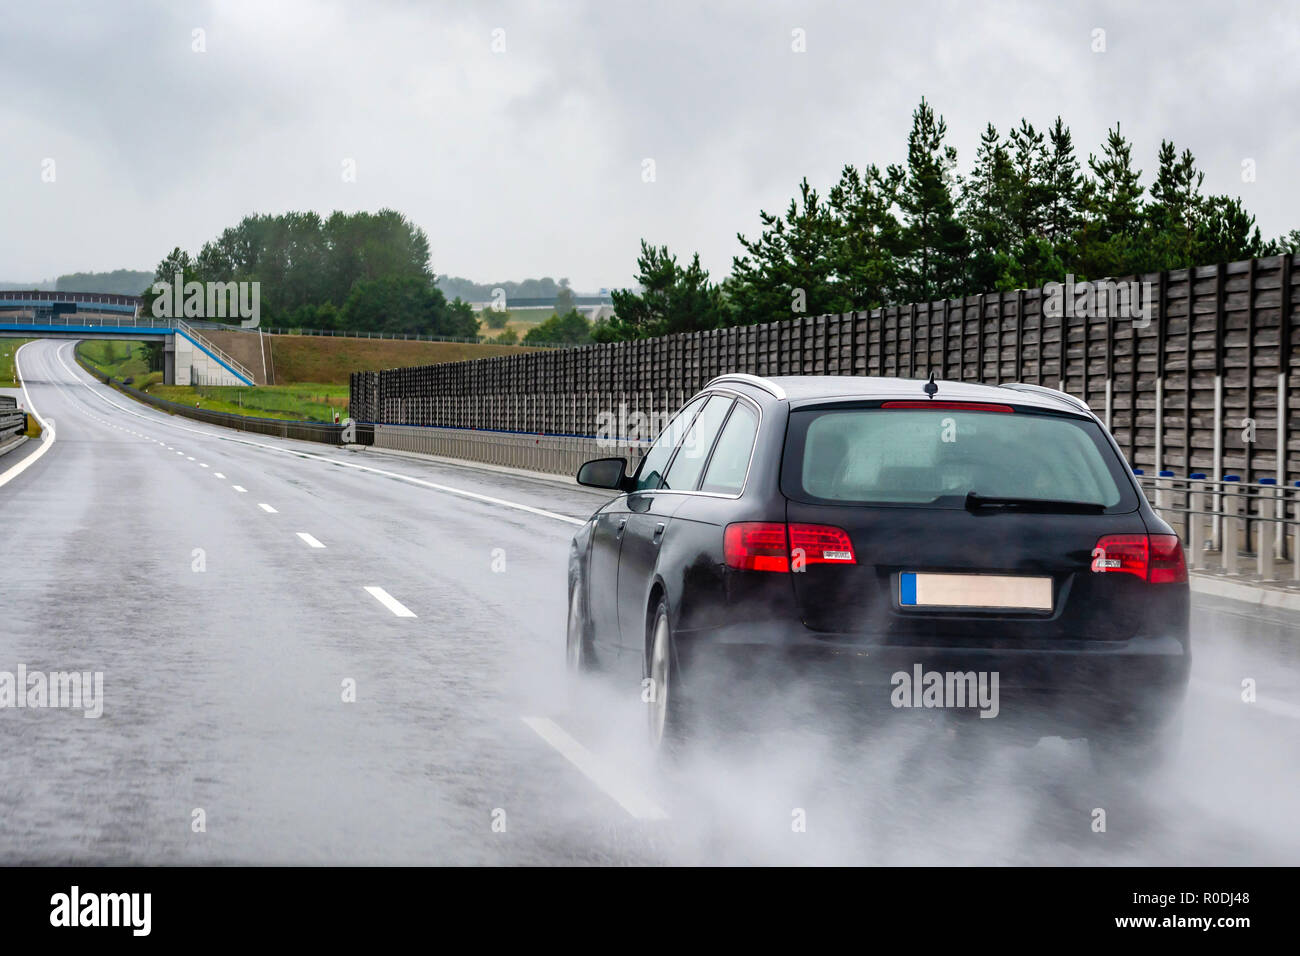 A car on a wet road in the rain. View from the rear through the car window. Stock Photo